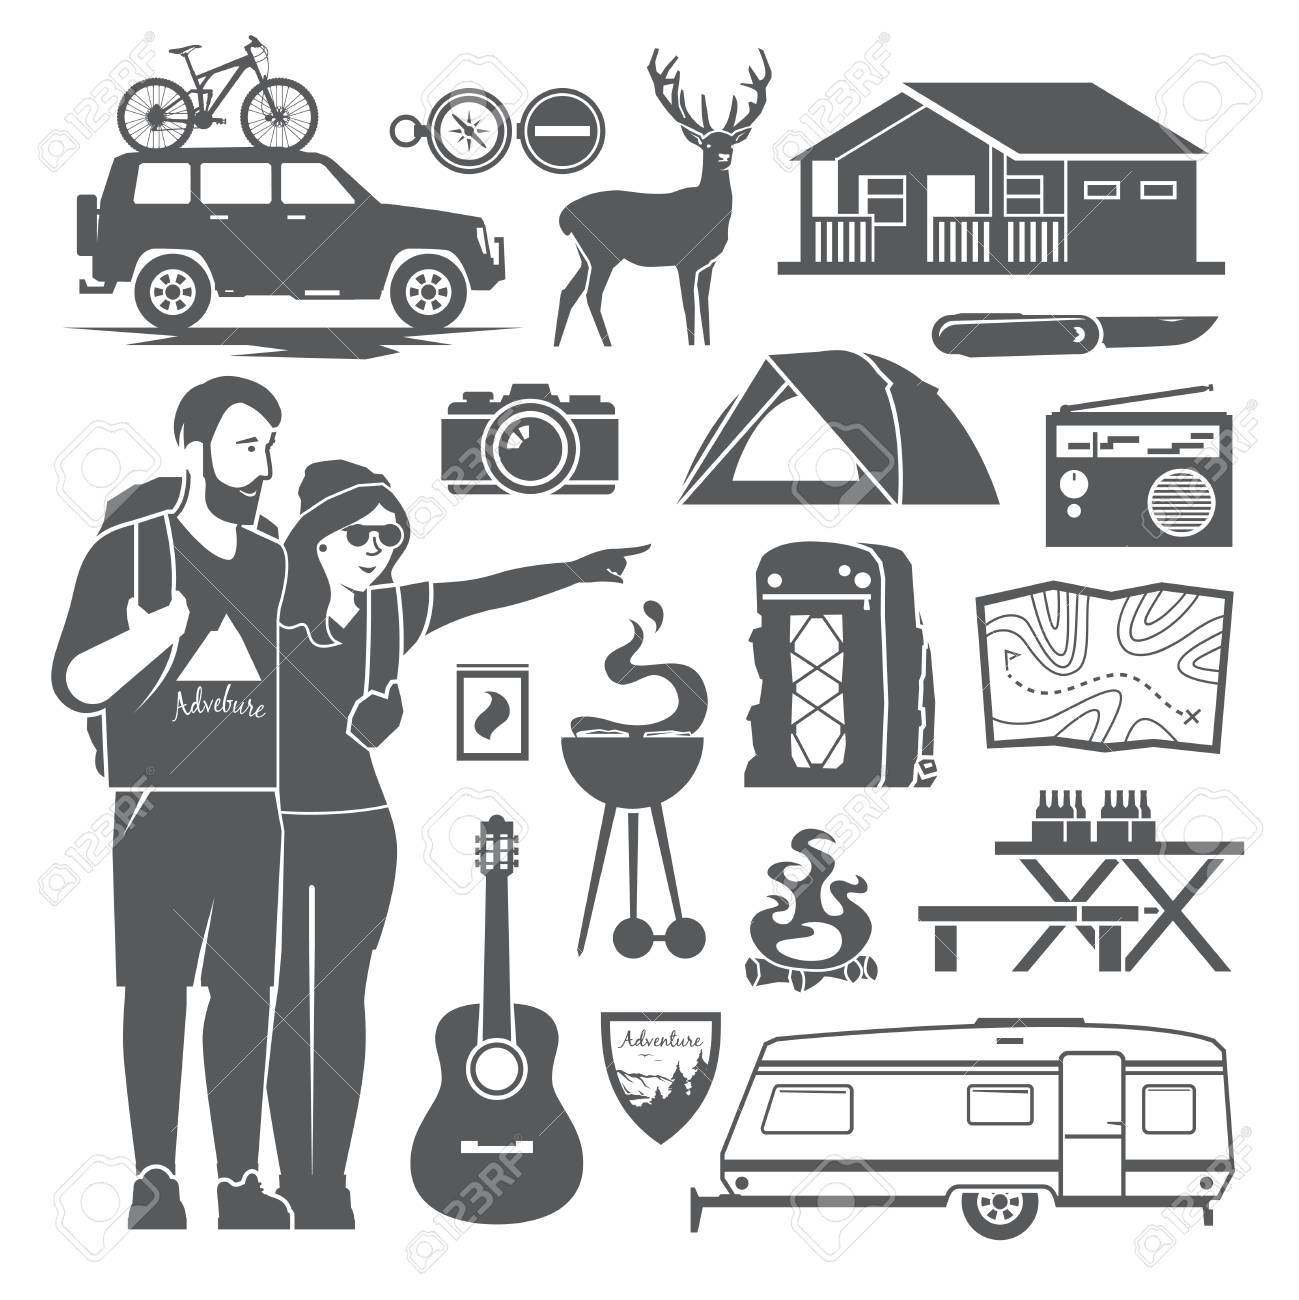 Vector Black And White Icons On The Theme Of Climbing, Trekking, Hiking,  Walking